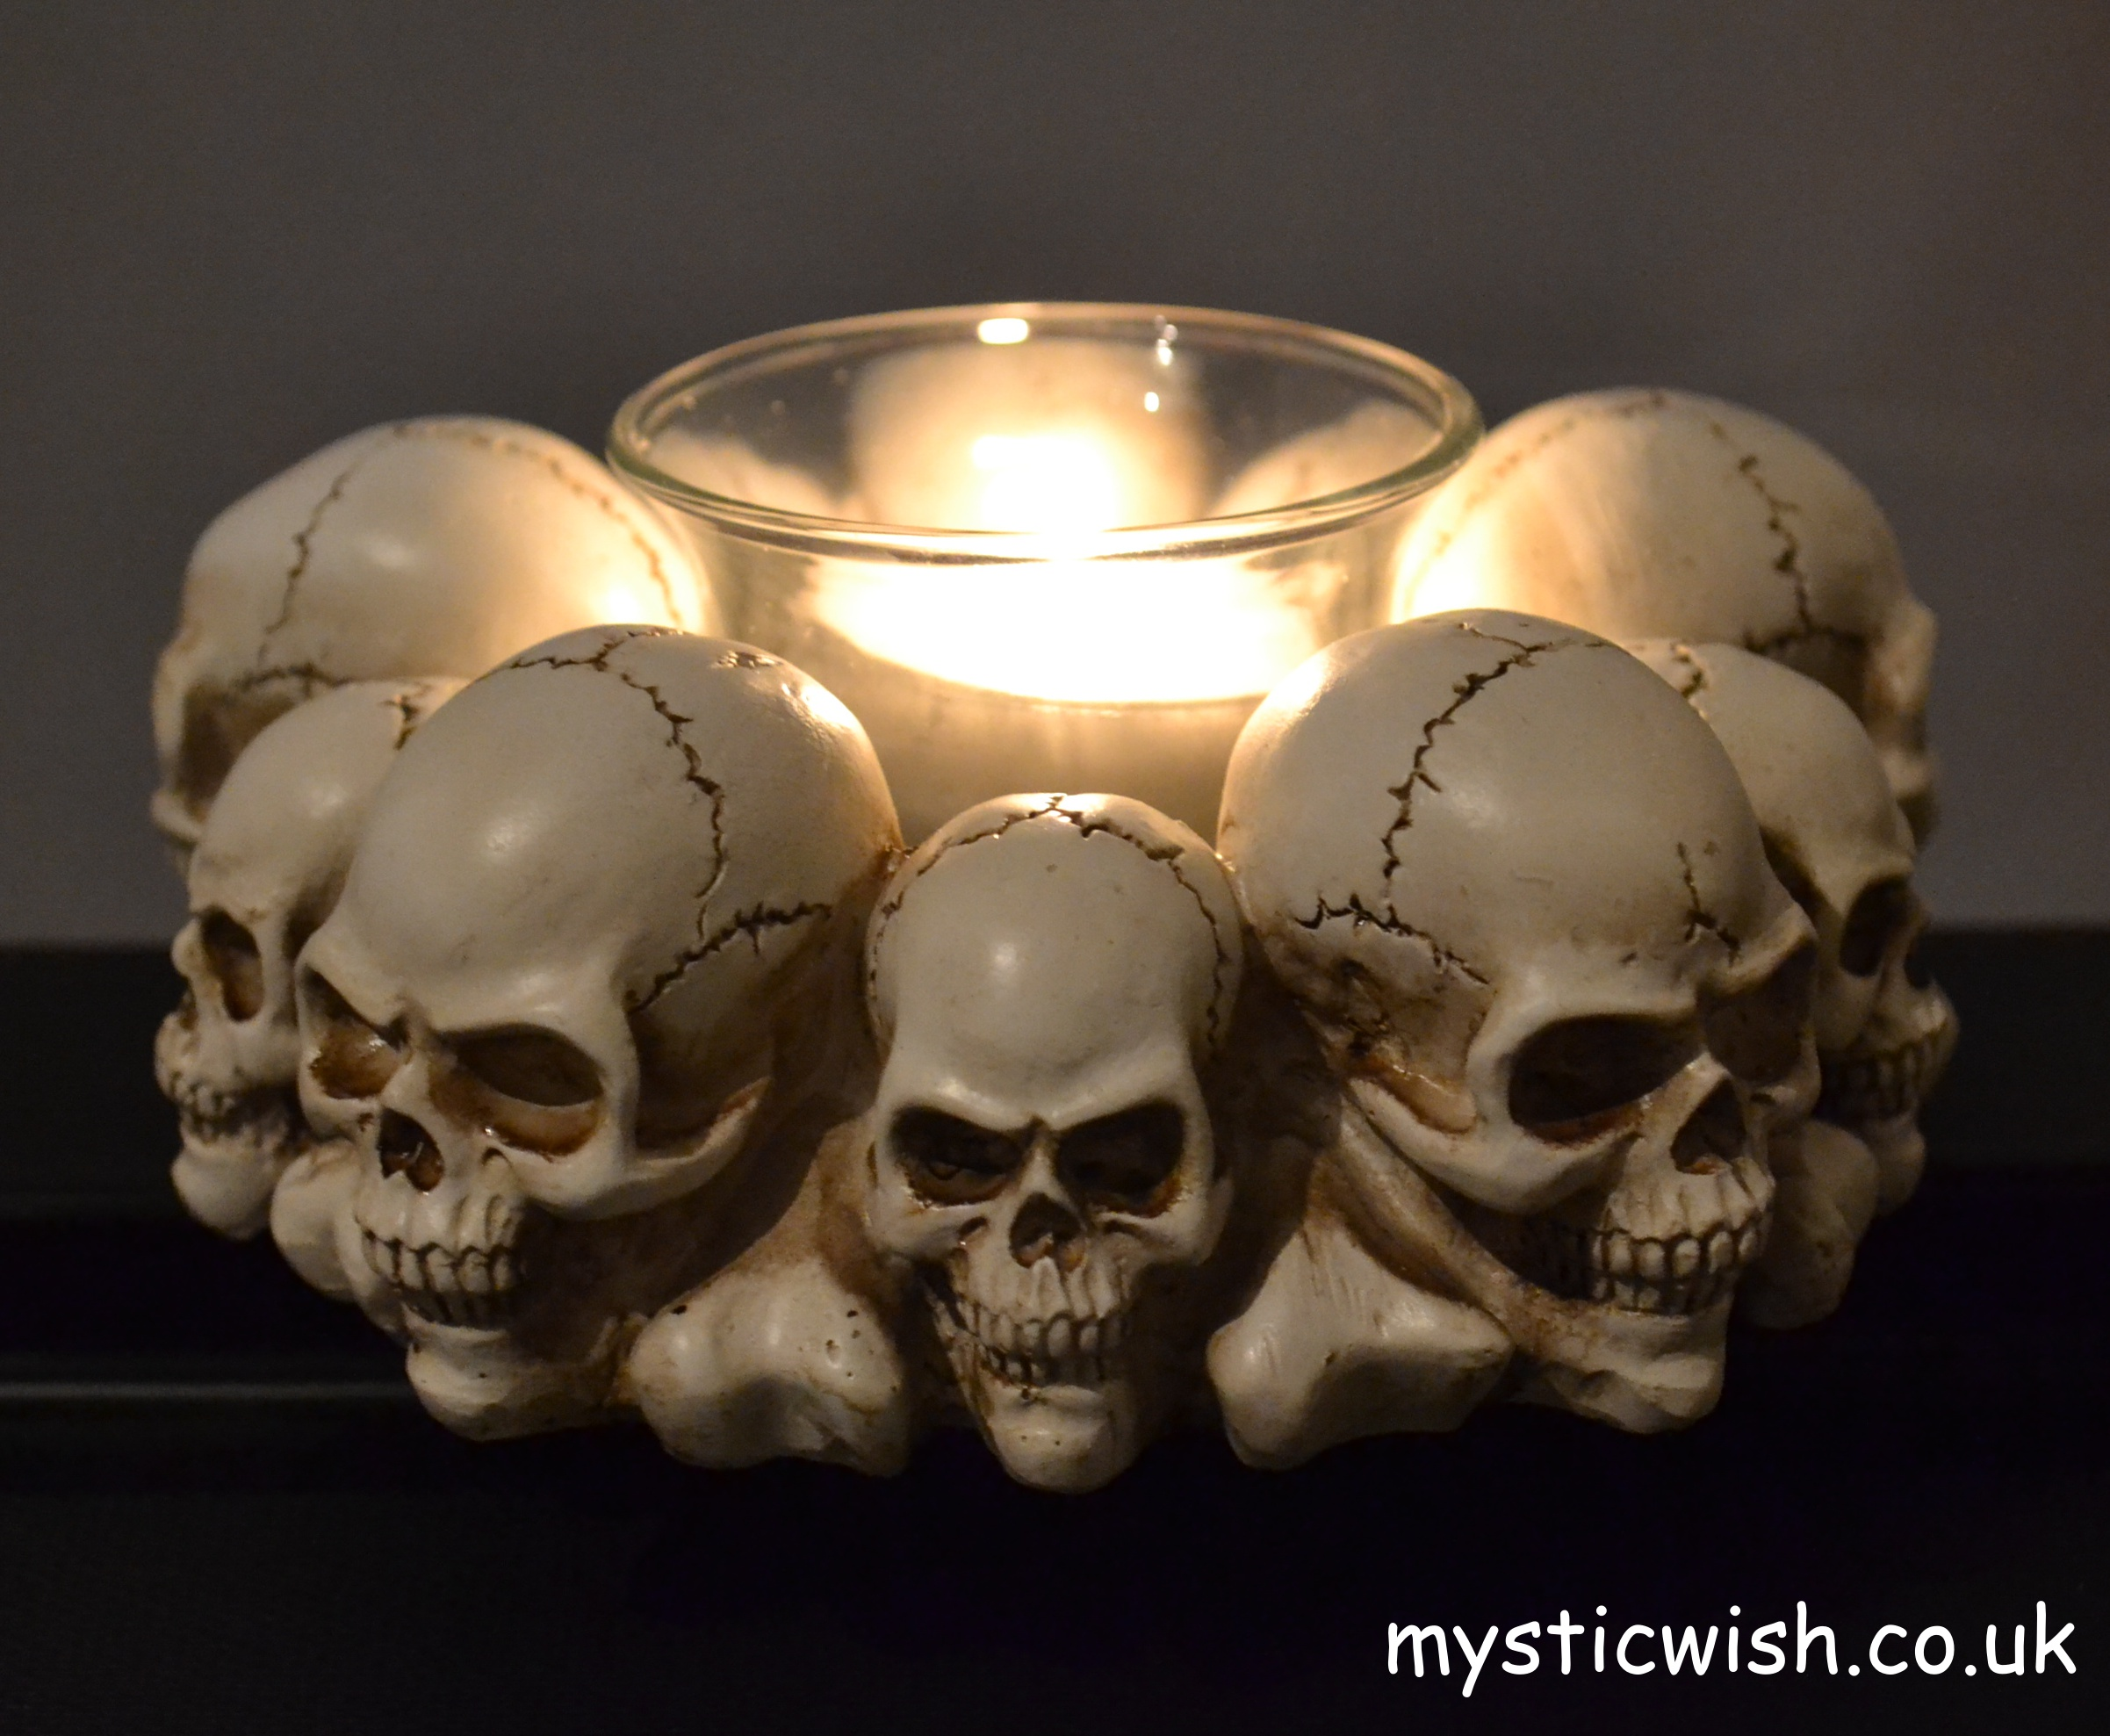 Skull Head Candle Holder Mystic Wish